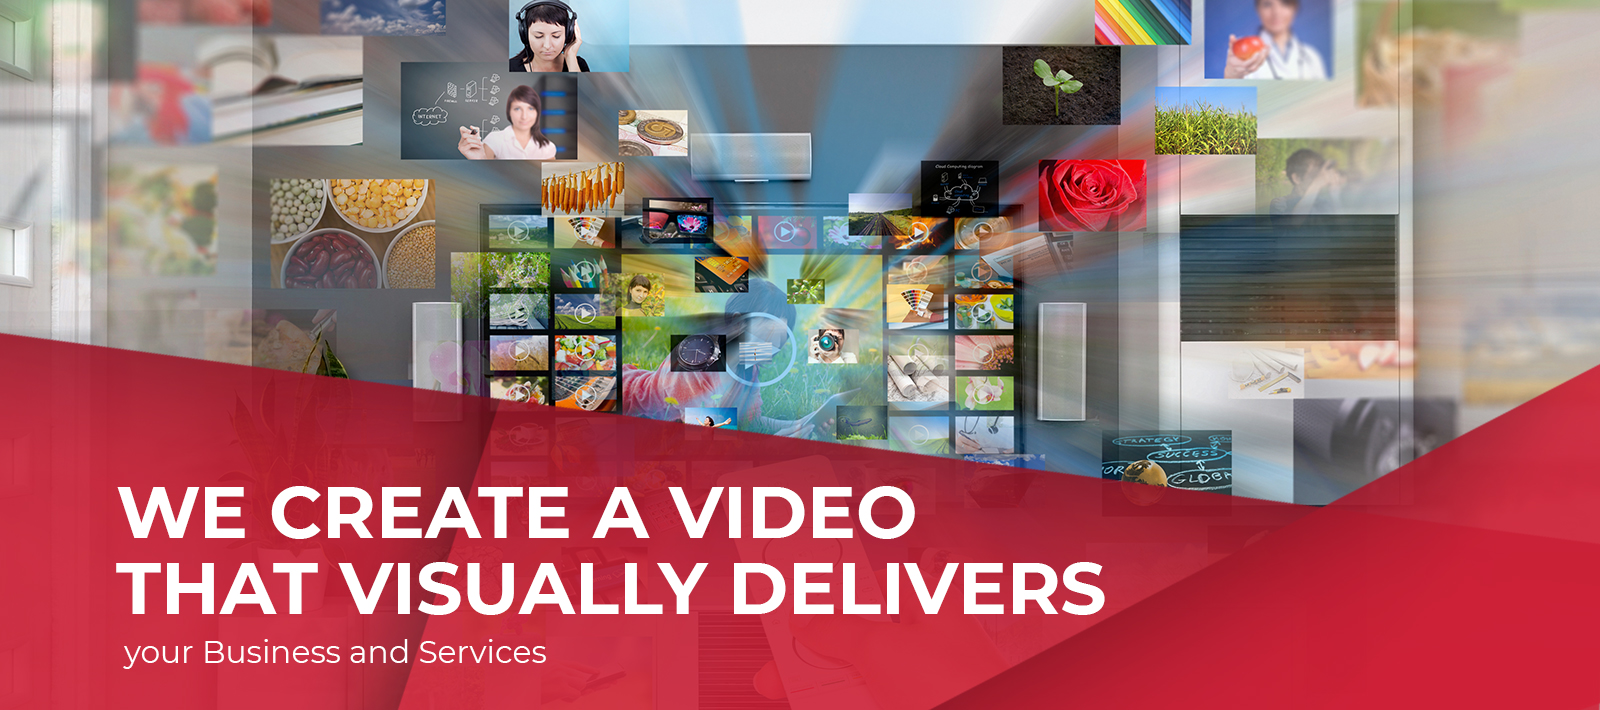 We create a video that visually delivers your Business and Services